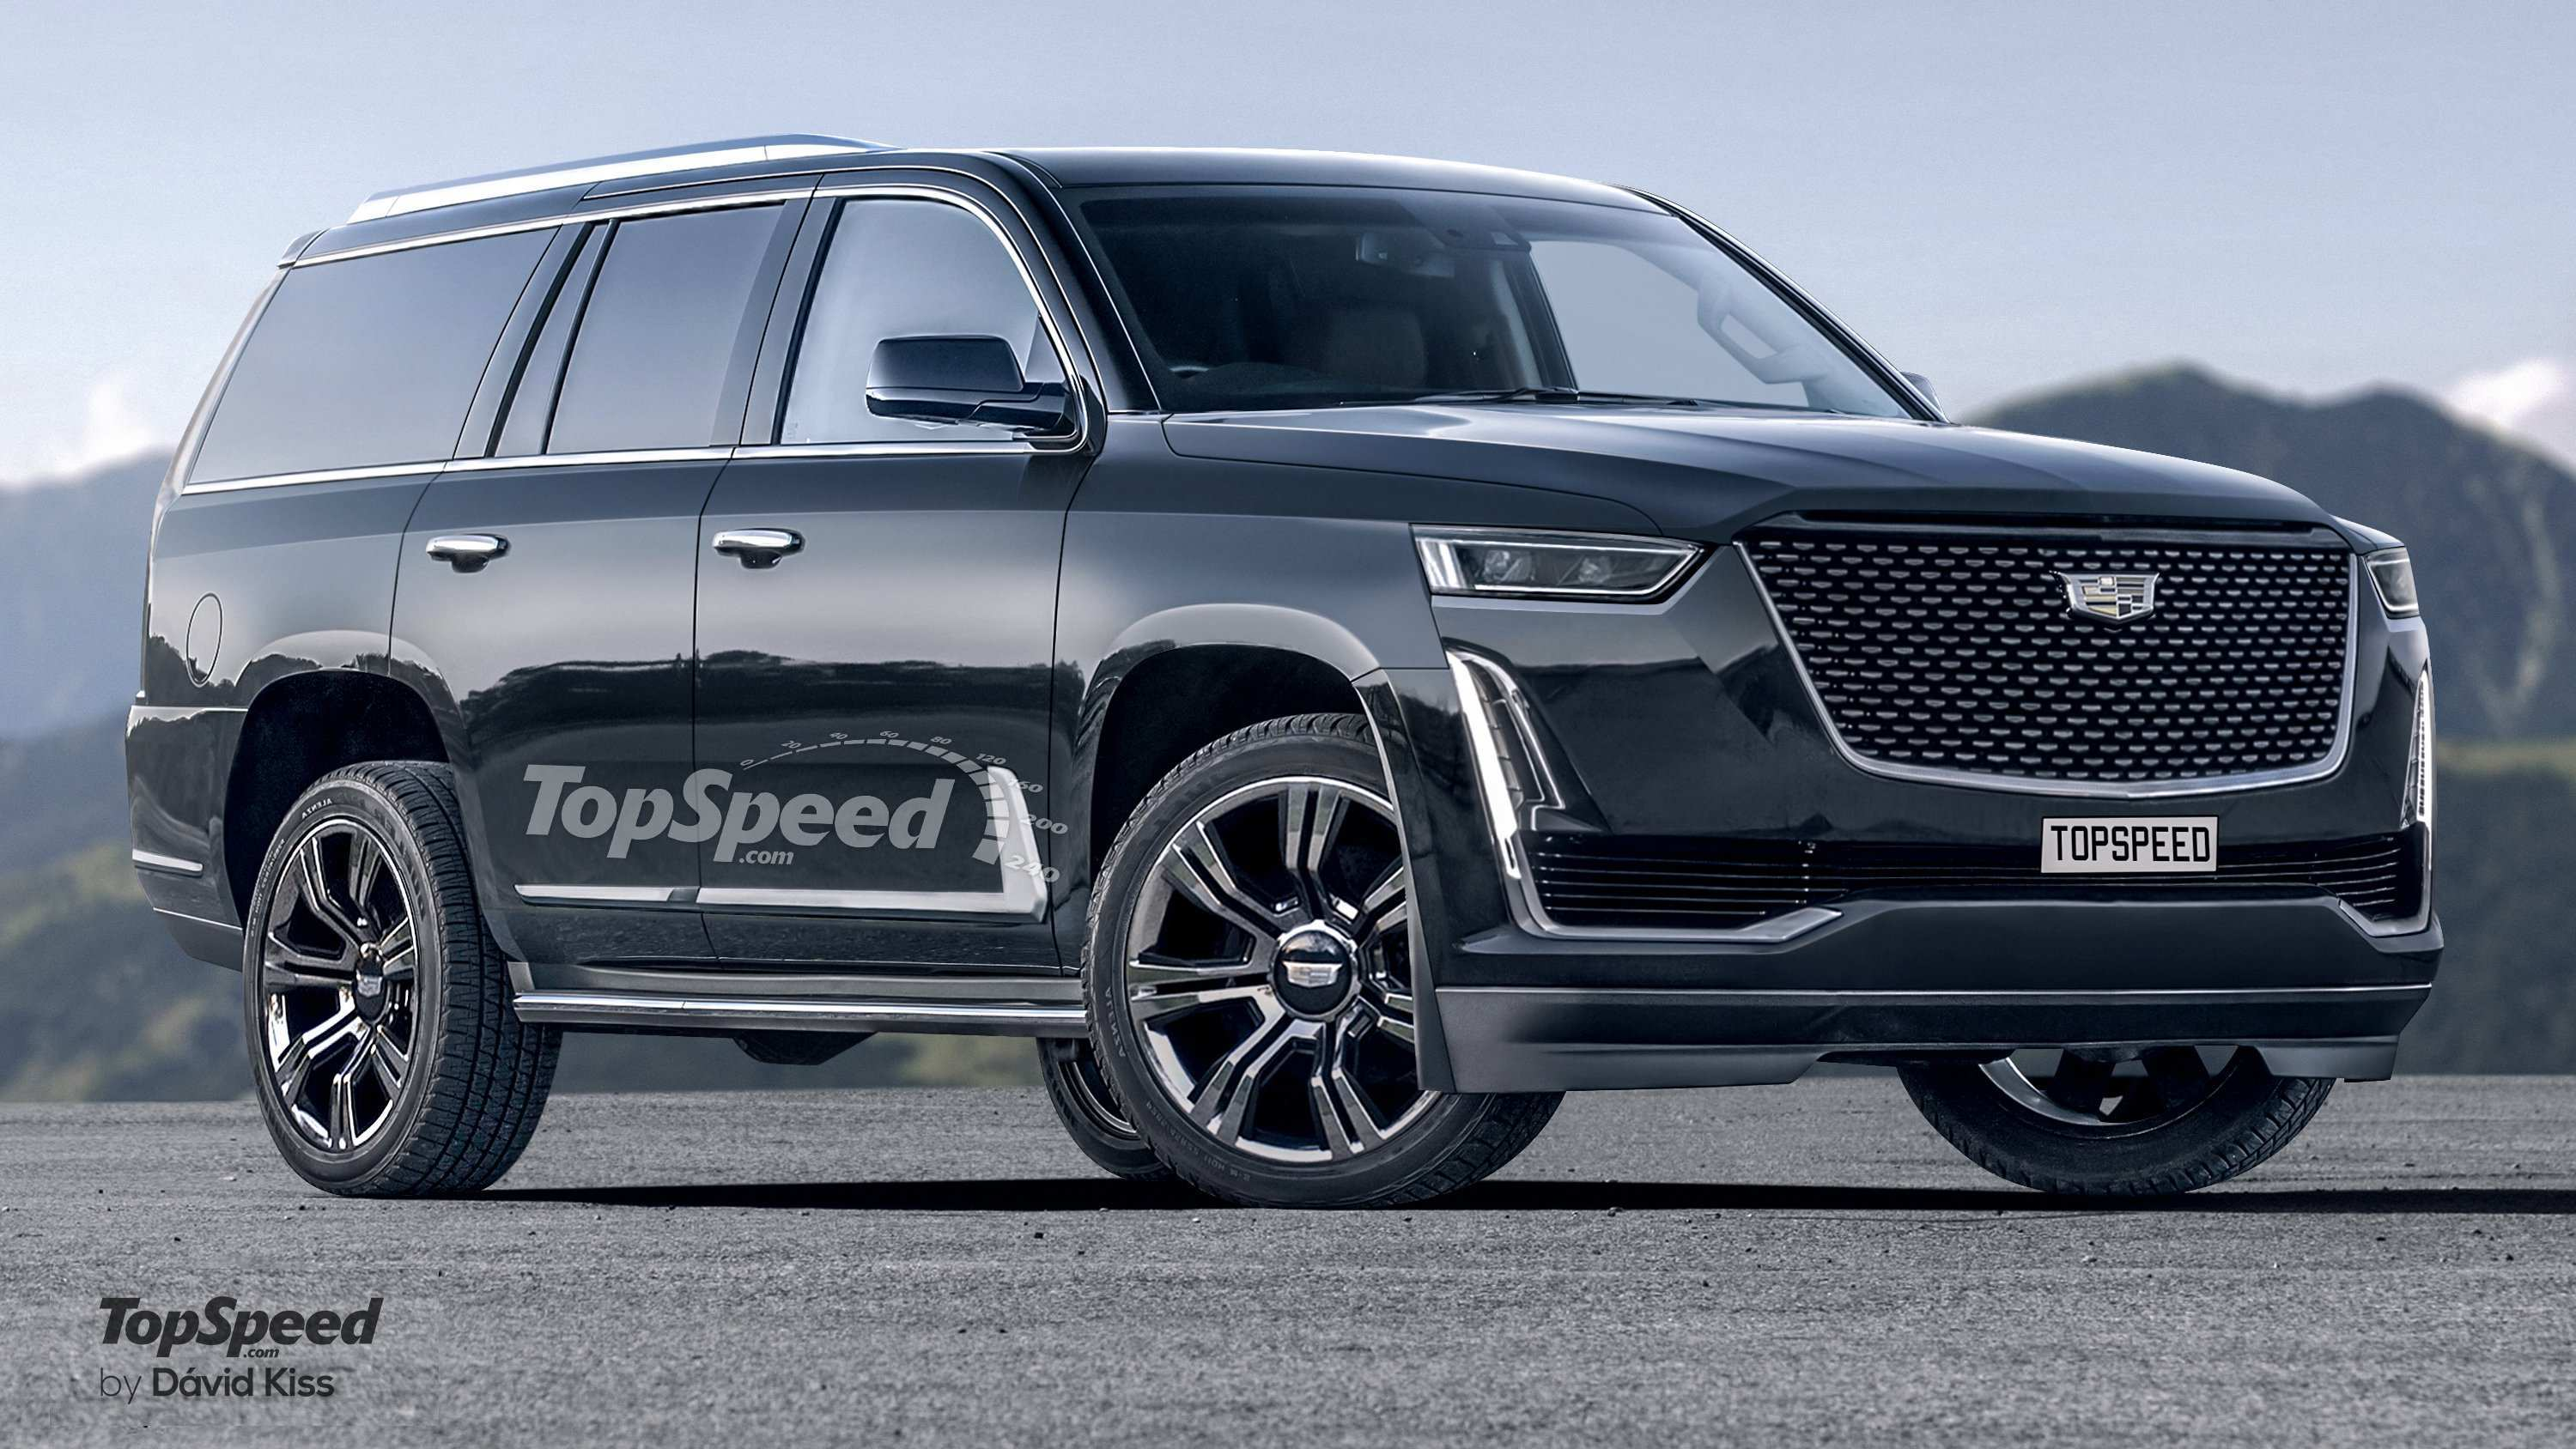 41 All New When Will The 2020 Cadillac Escalade Be Released Redesign And Concept